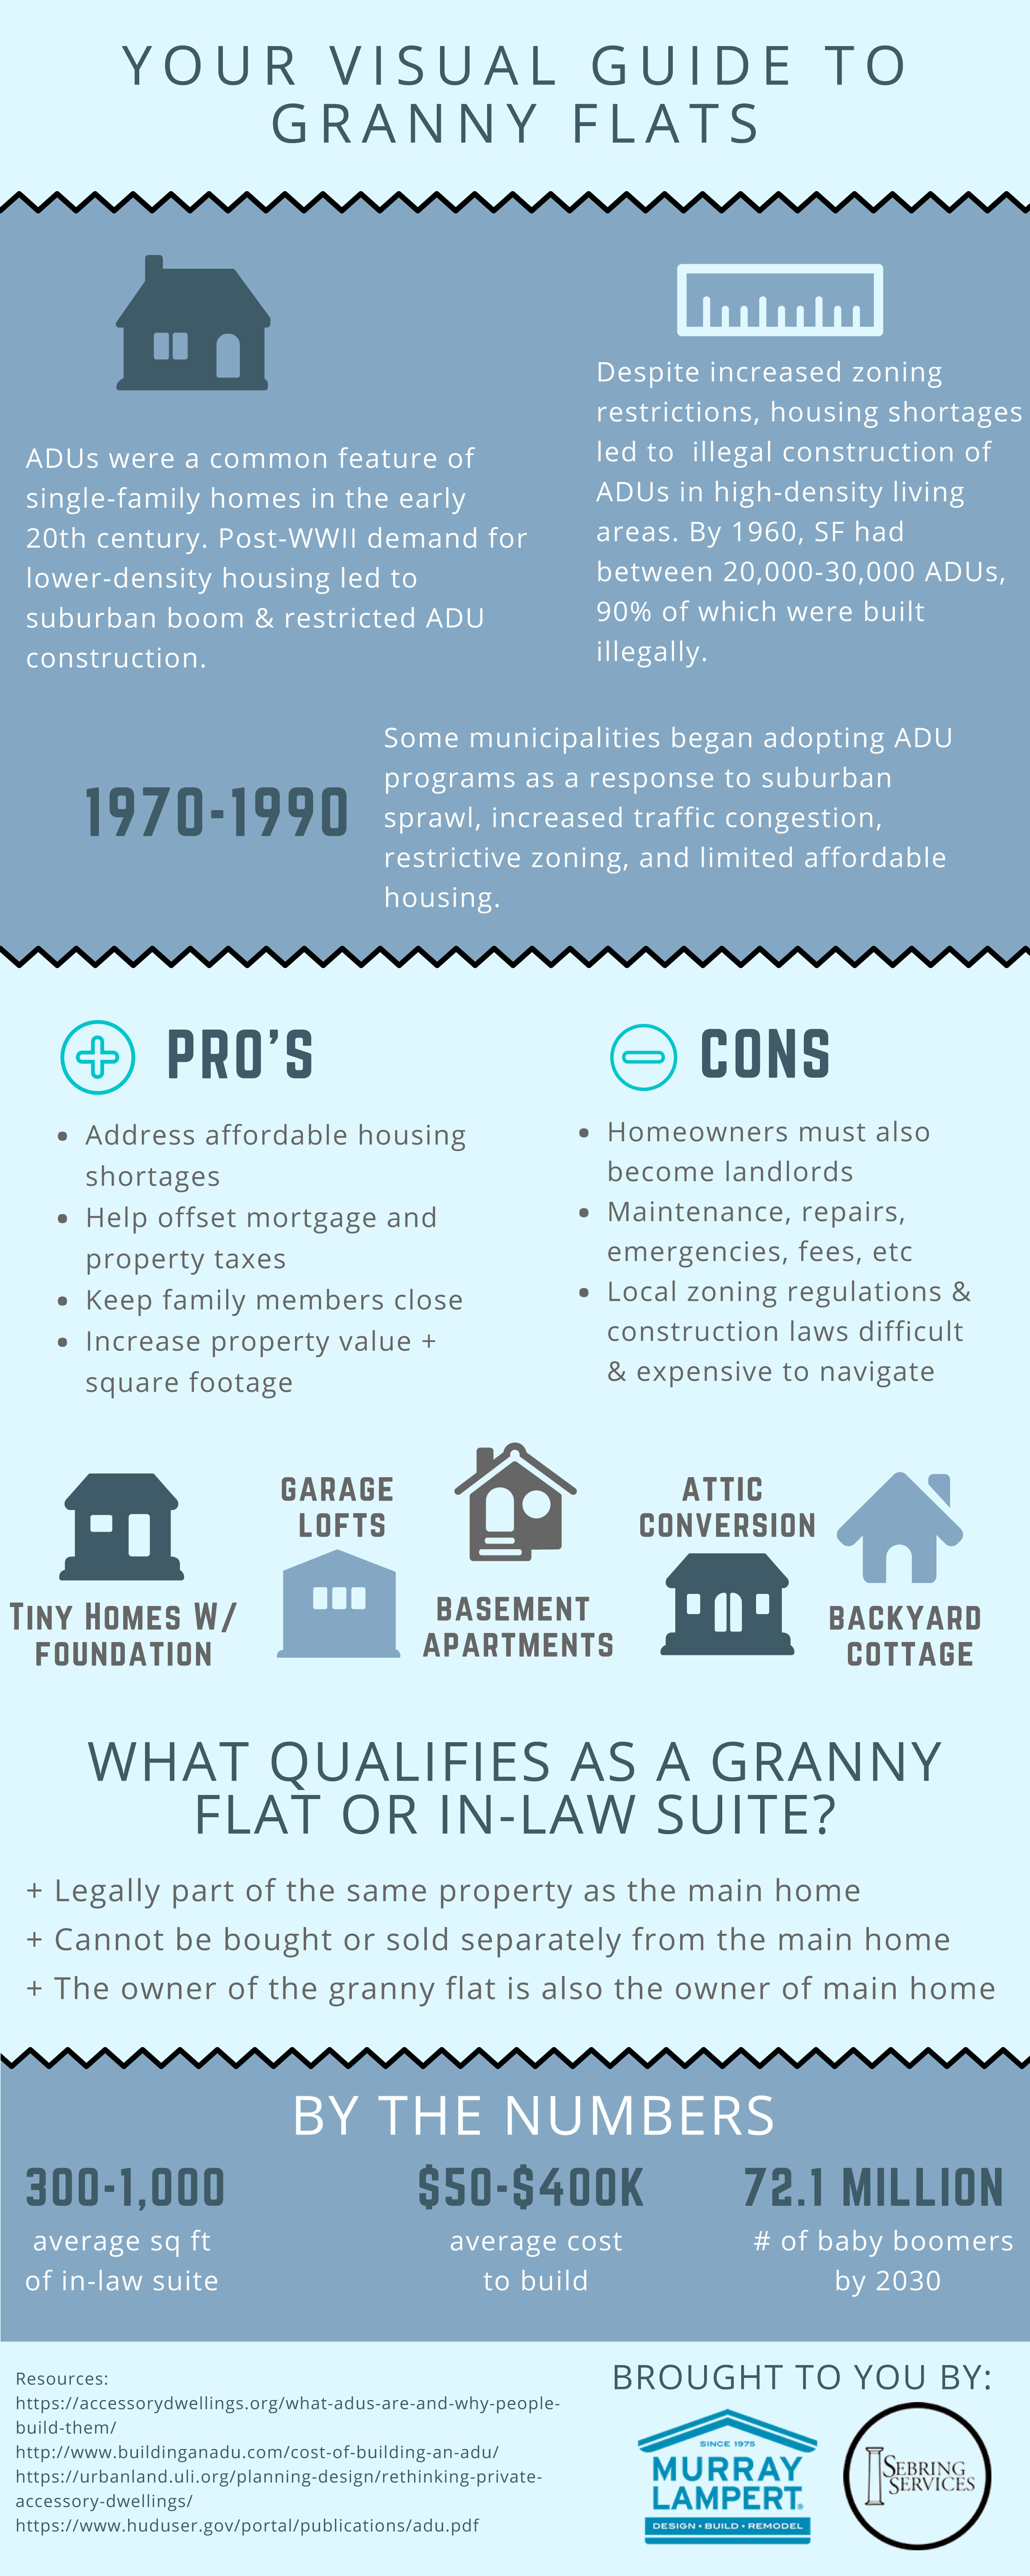 Murray Lampert Sebring Services Visual Guide to Granny Flats INFOGRAPHIC